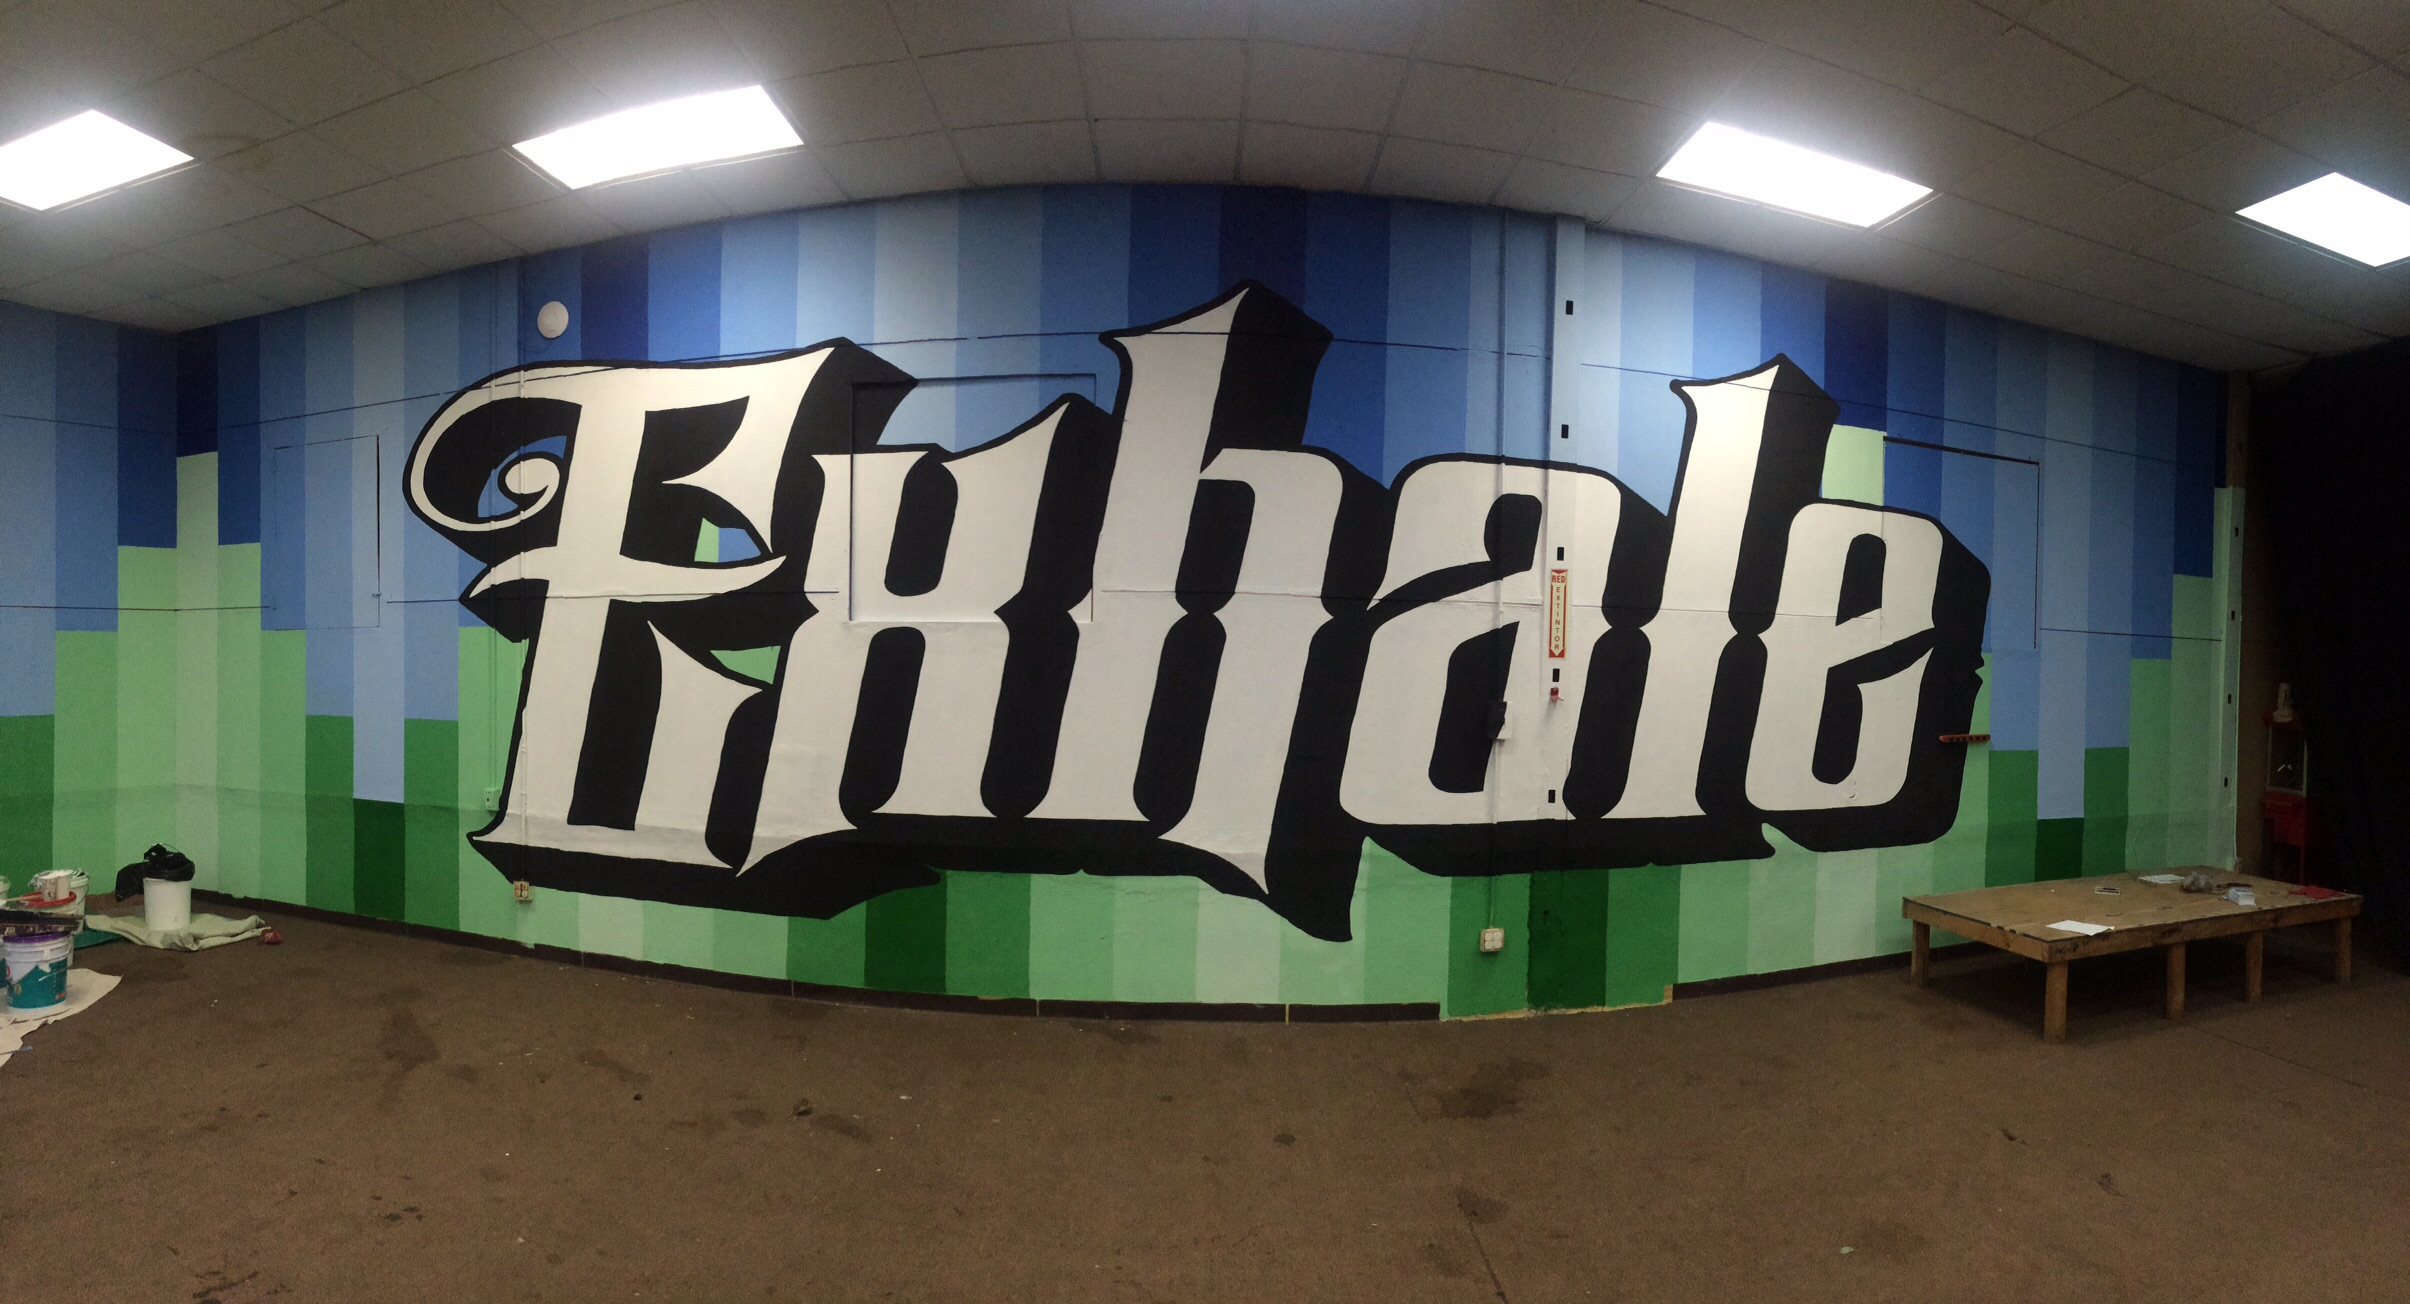 That lettering is at least nine feet tall! Despite the large scale, this is actually pretty easy to make happen. All you need is the  Exhale Inhale  Art, a projector, and some paint!